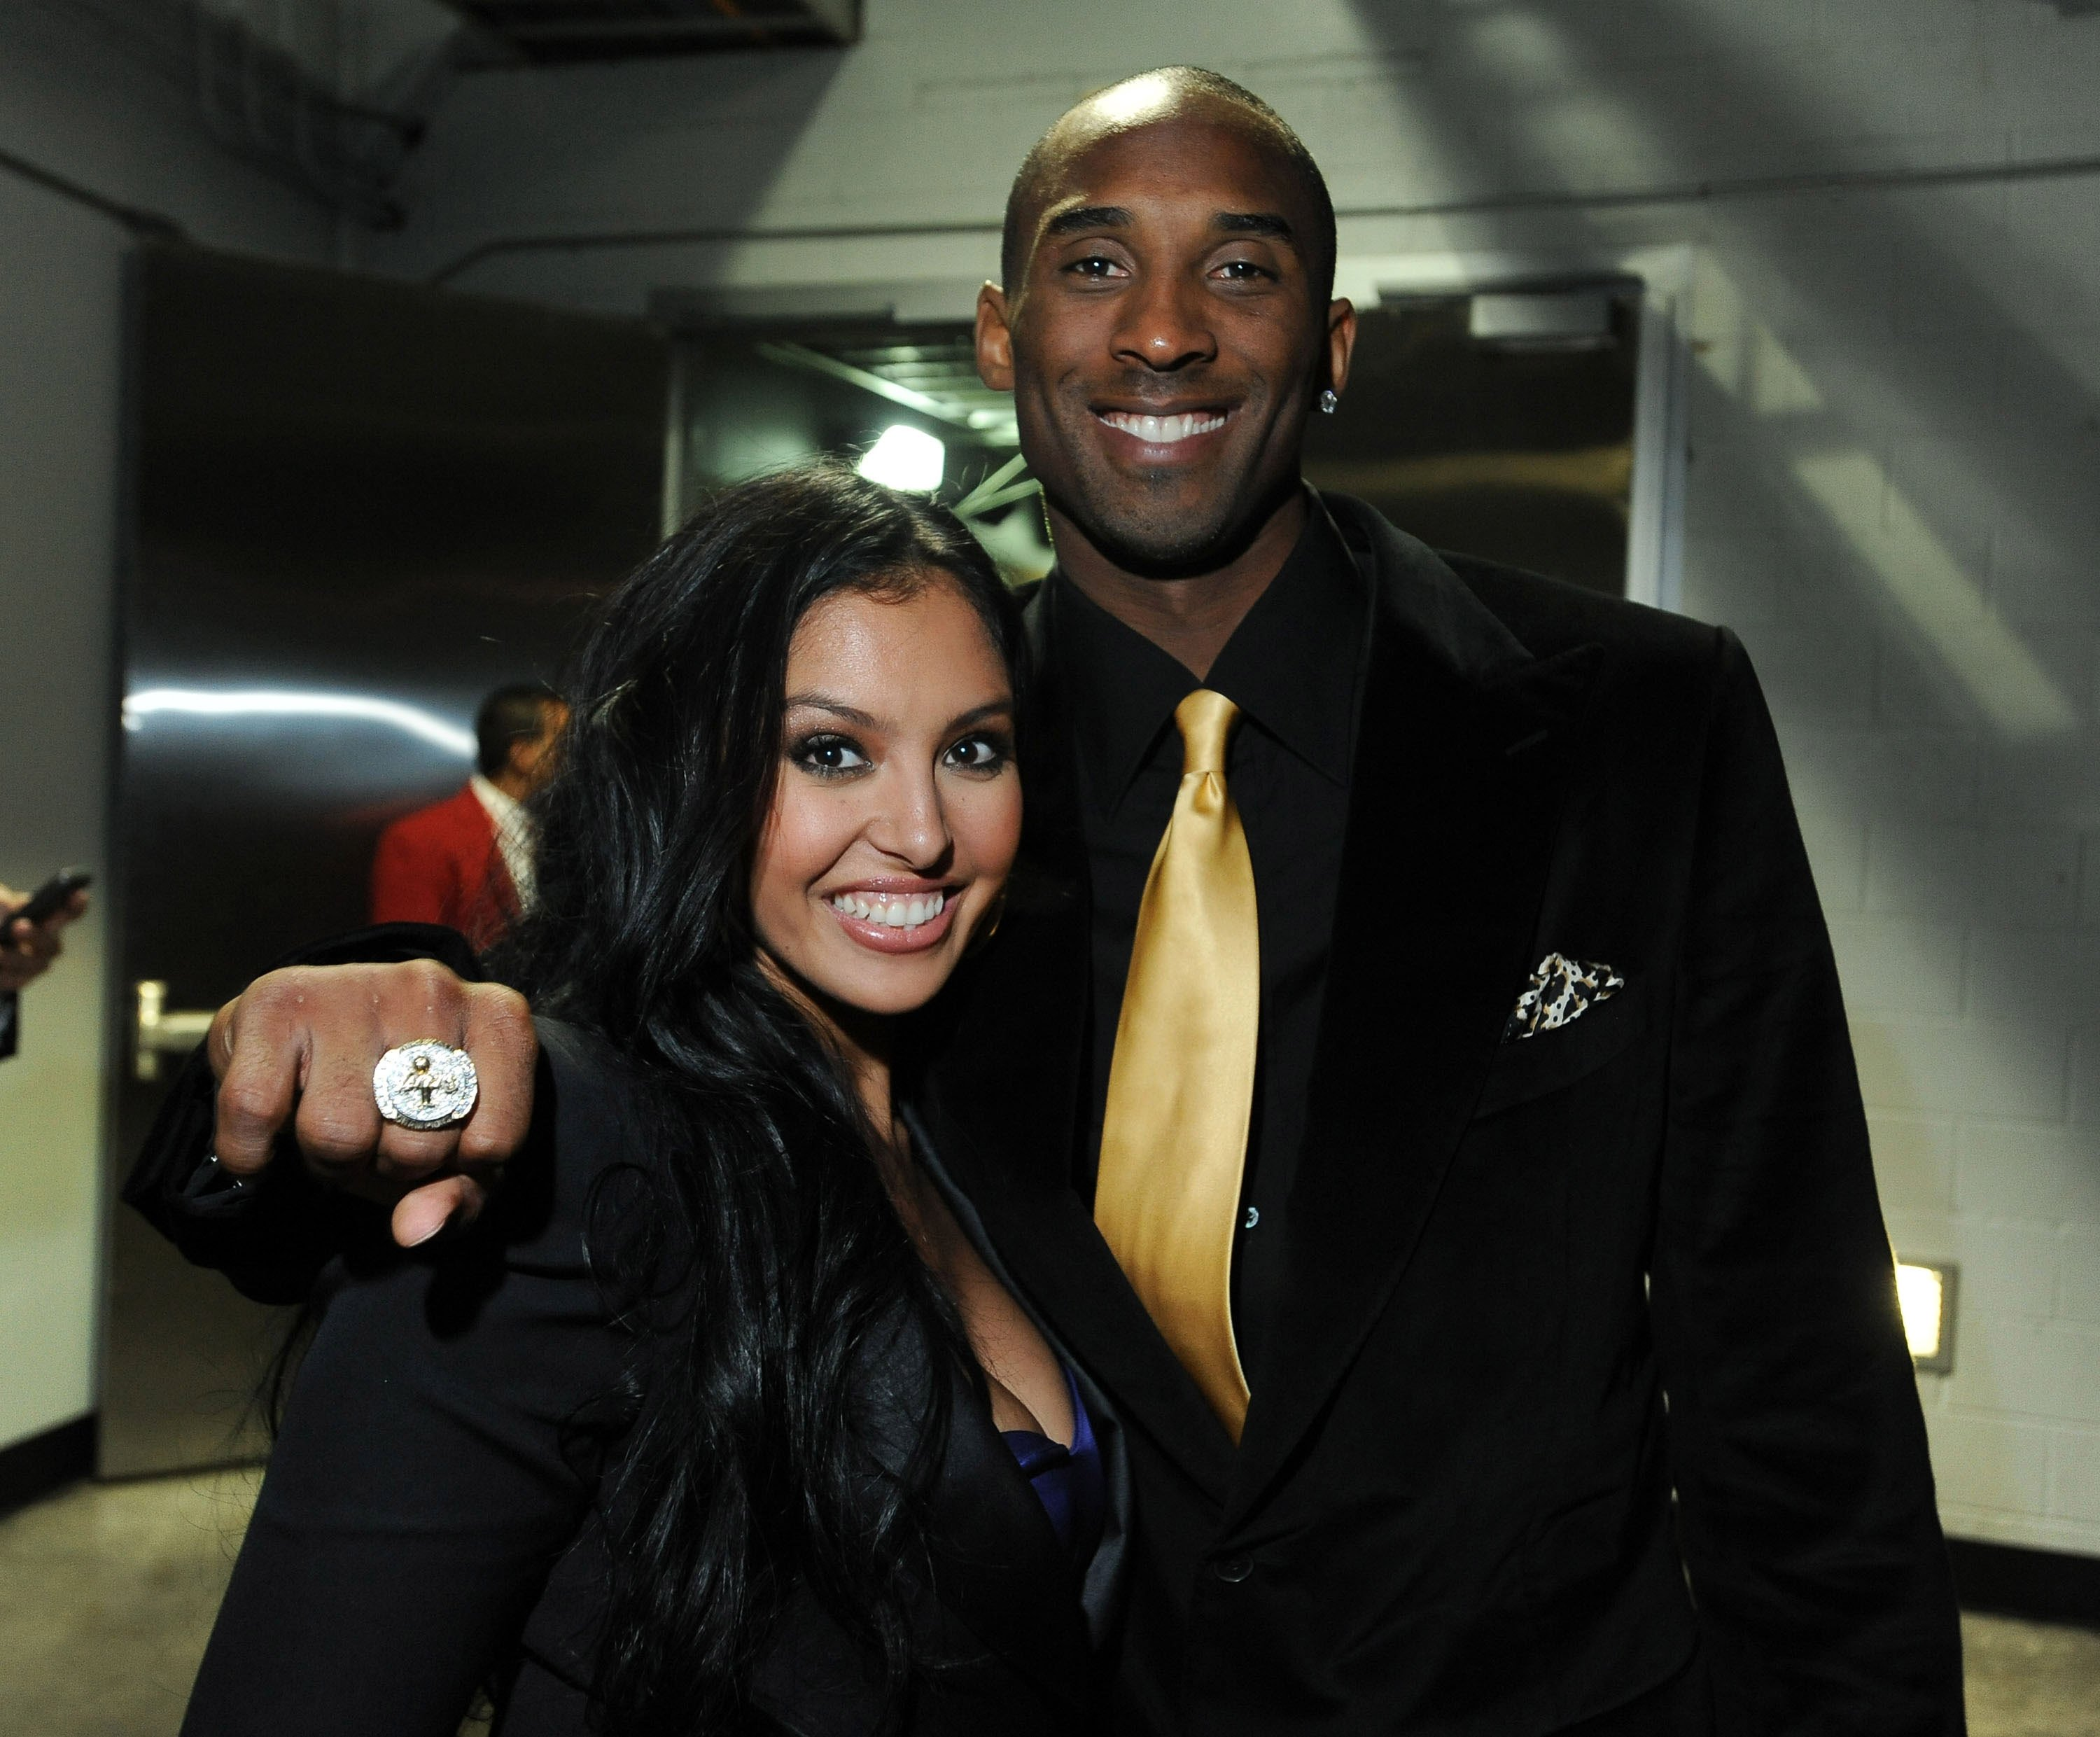 The late Kobe Bryant and Vanessa at Staples Center on October 27, 2009 in Los Angeles, California| Source: Getty Images